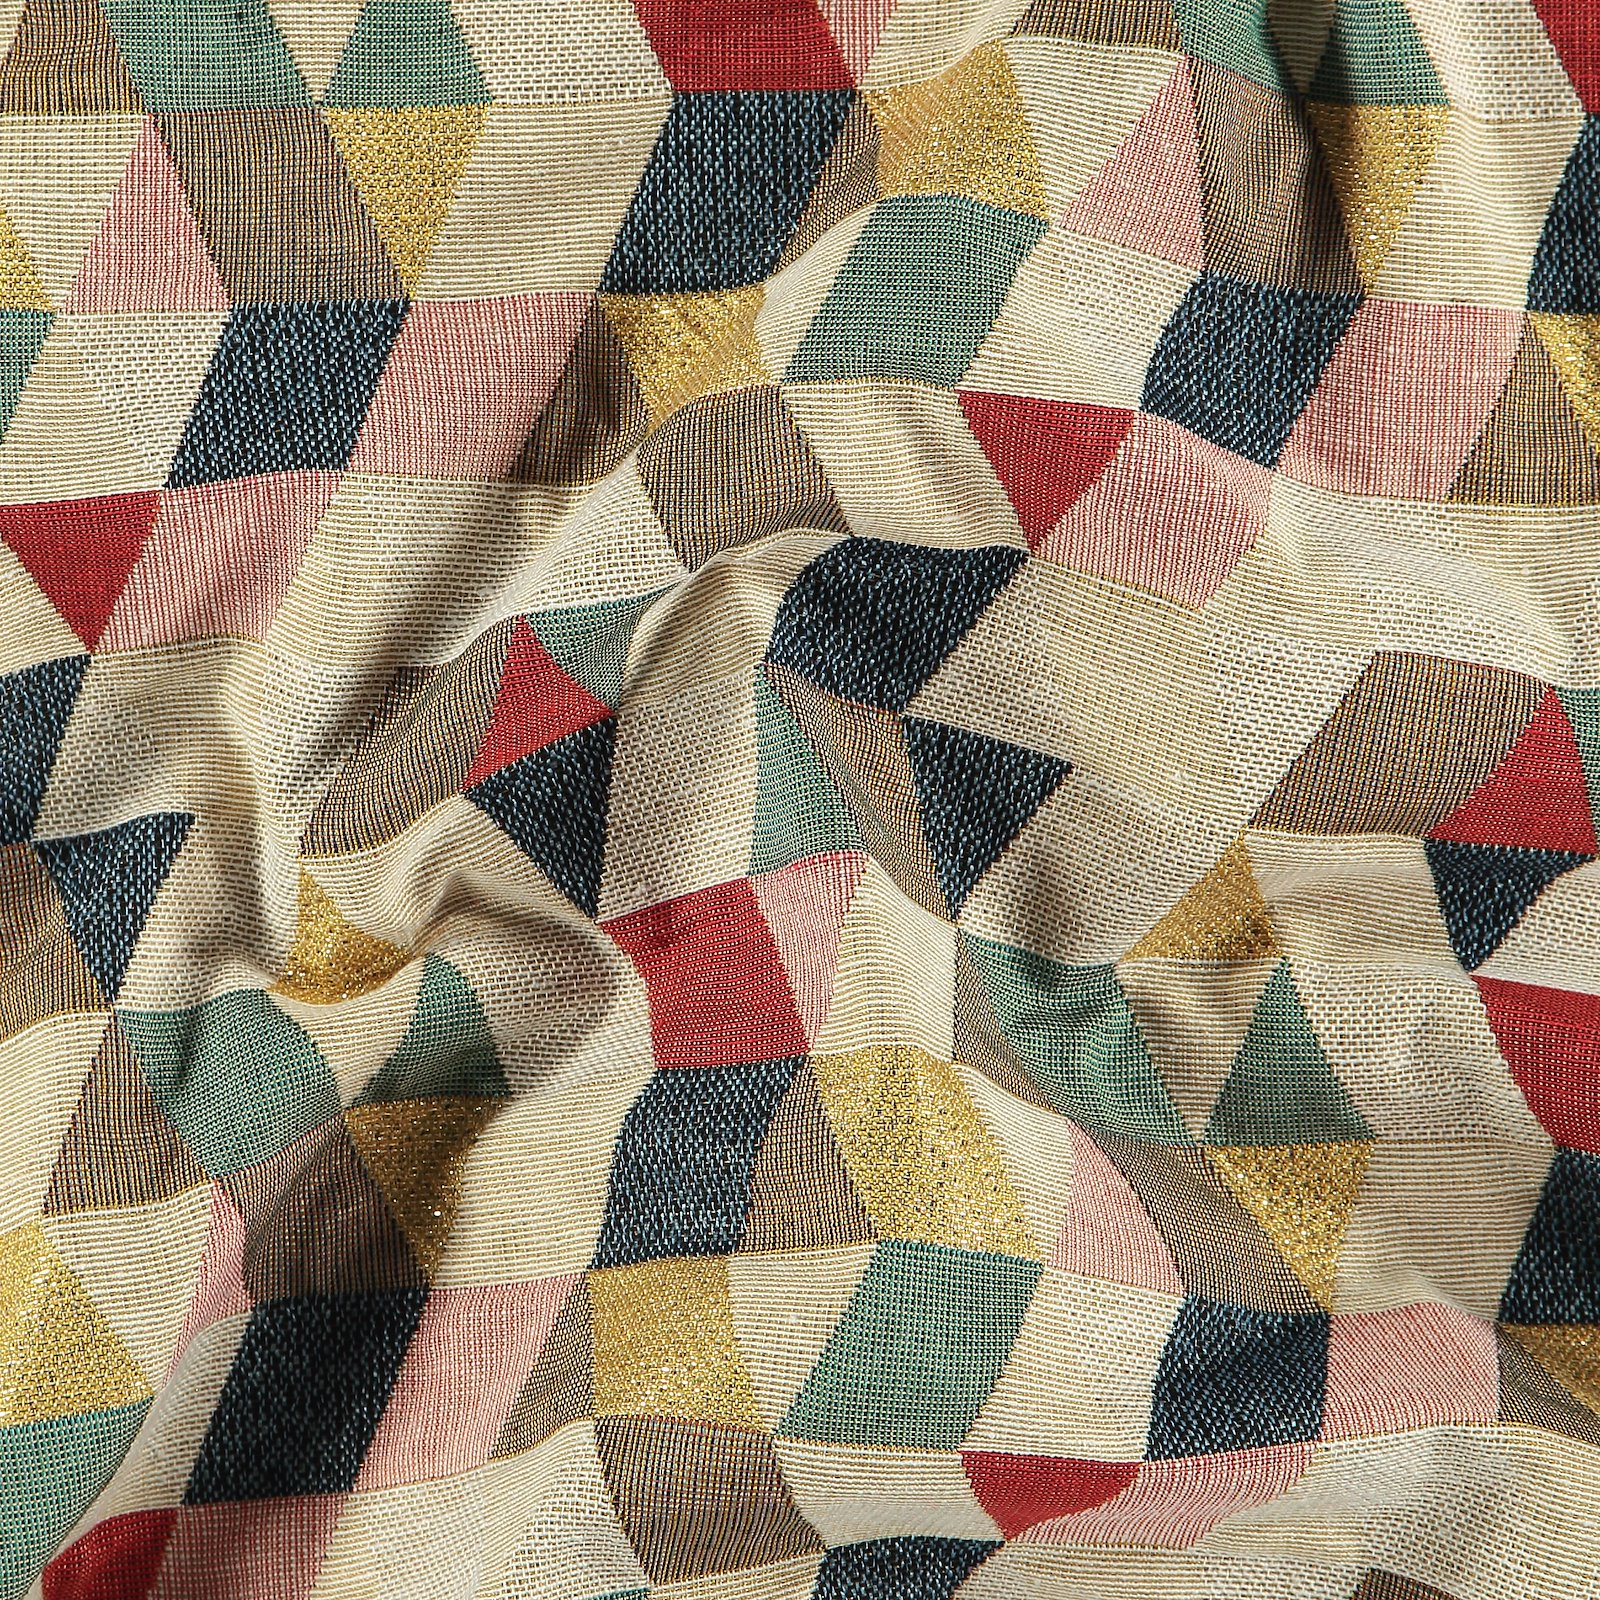 Jacquard multicolor abstract pattern